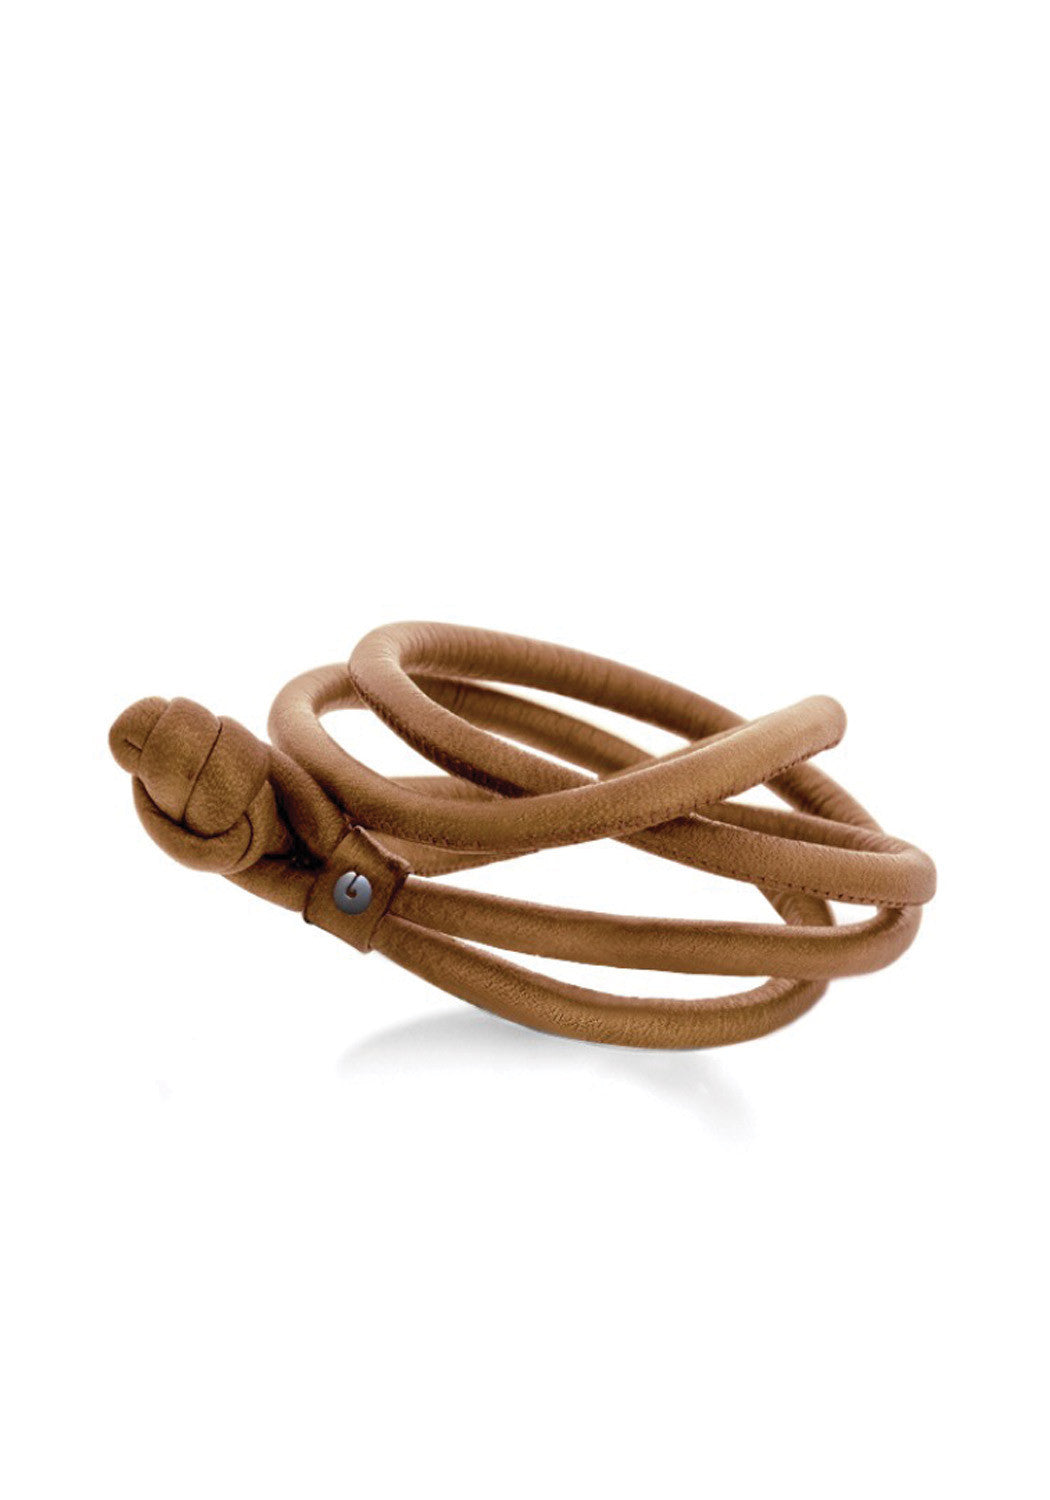 OLE LYNGGAARD Leather Bracelet Camel For Sweet Drops | Small